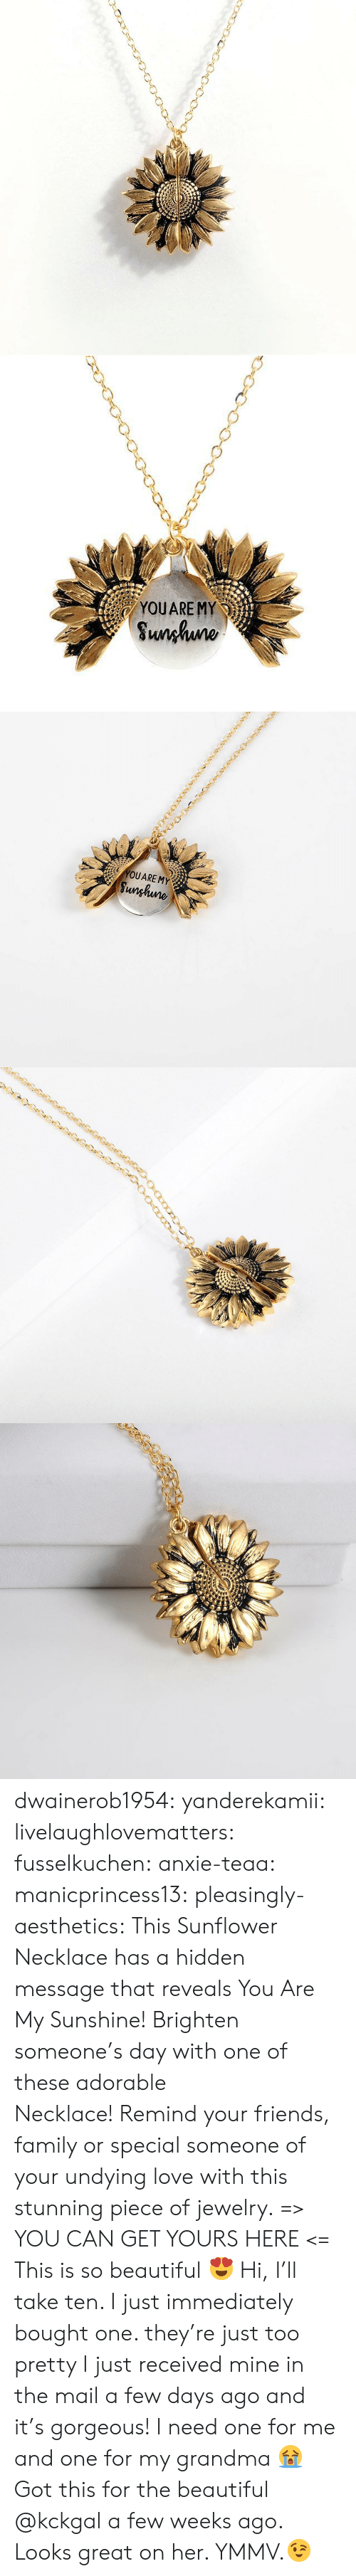 Mail: YOUARE MY  Sunhuno   YOUARE MY  Sunghune dwainerob1954:  yanderekamii:  livelaughlovematters:  fusselkuchen: anxie-teaa:   manicprincess13:   pleasingly-aesthetics:  This Sunflower Necklace has a hidden message that reveals You Are My Sunshine! Brighten someone's day with one of these adorable Necklace!Remind your friends, family or special someone of your undying love with this stunning piece of jewelry. => YOU CAN GET YOURS HERE <=   This is so beautiful 😍    Hi, I'll take ten.    I just immediately bought one. they're just too pretty   I just received mine in the mail a few days ago and it's gorgeous!  I need one for me and one for my grandma 😭  Got this for the beautiful @kckgal a few weeks ago.  Looks great on her. YMMV.😉